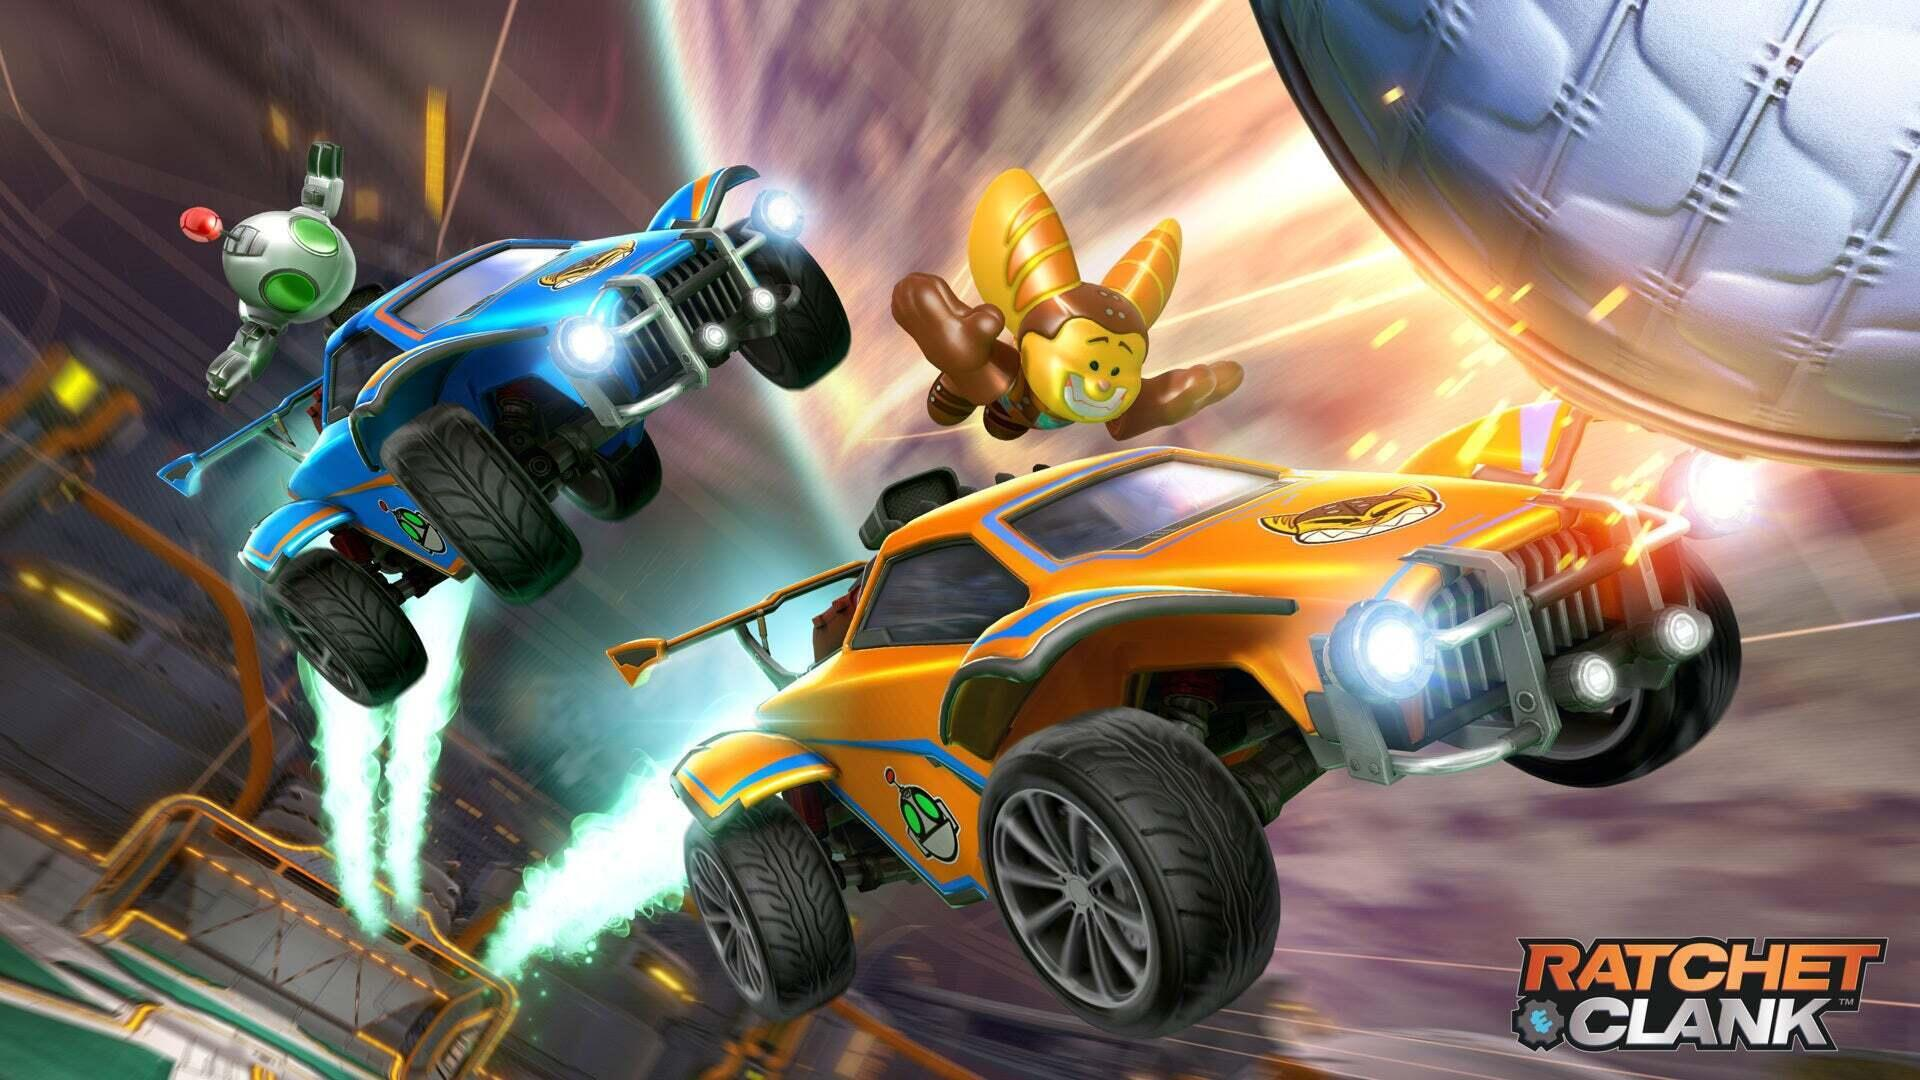 Ratchet and Clank Blast into Rocket League Image